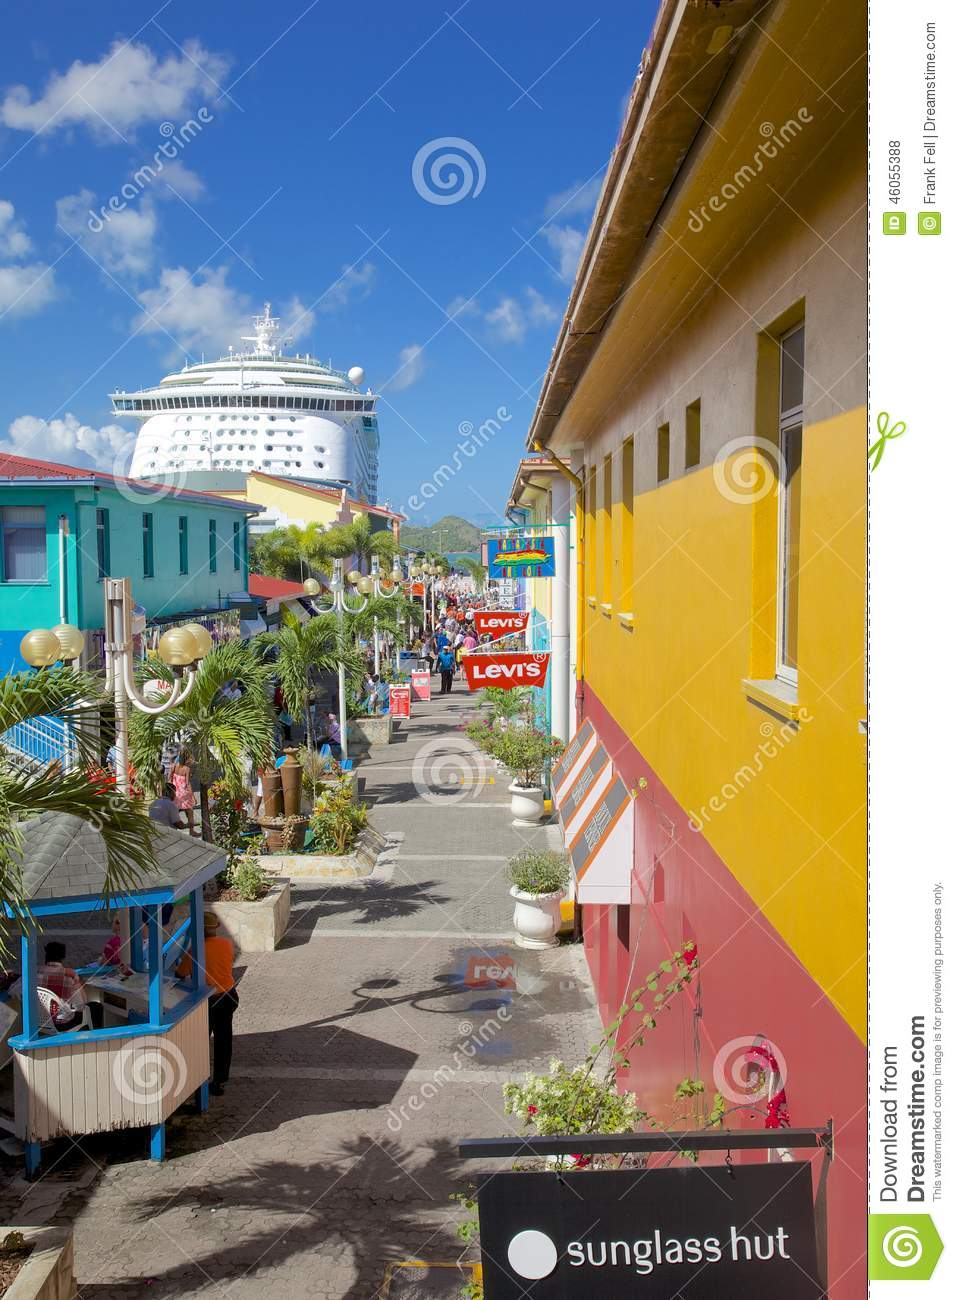 West Indies, Caribbean, Antigua, St Johns, Heritage Quay & Cruise Ship in Port